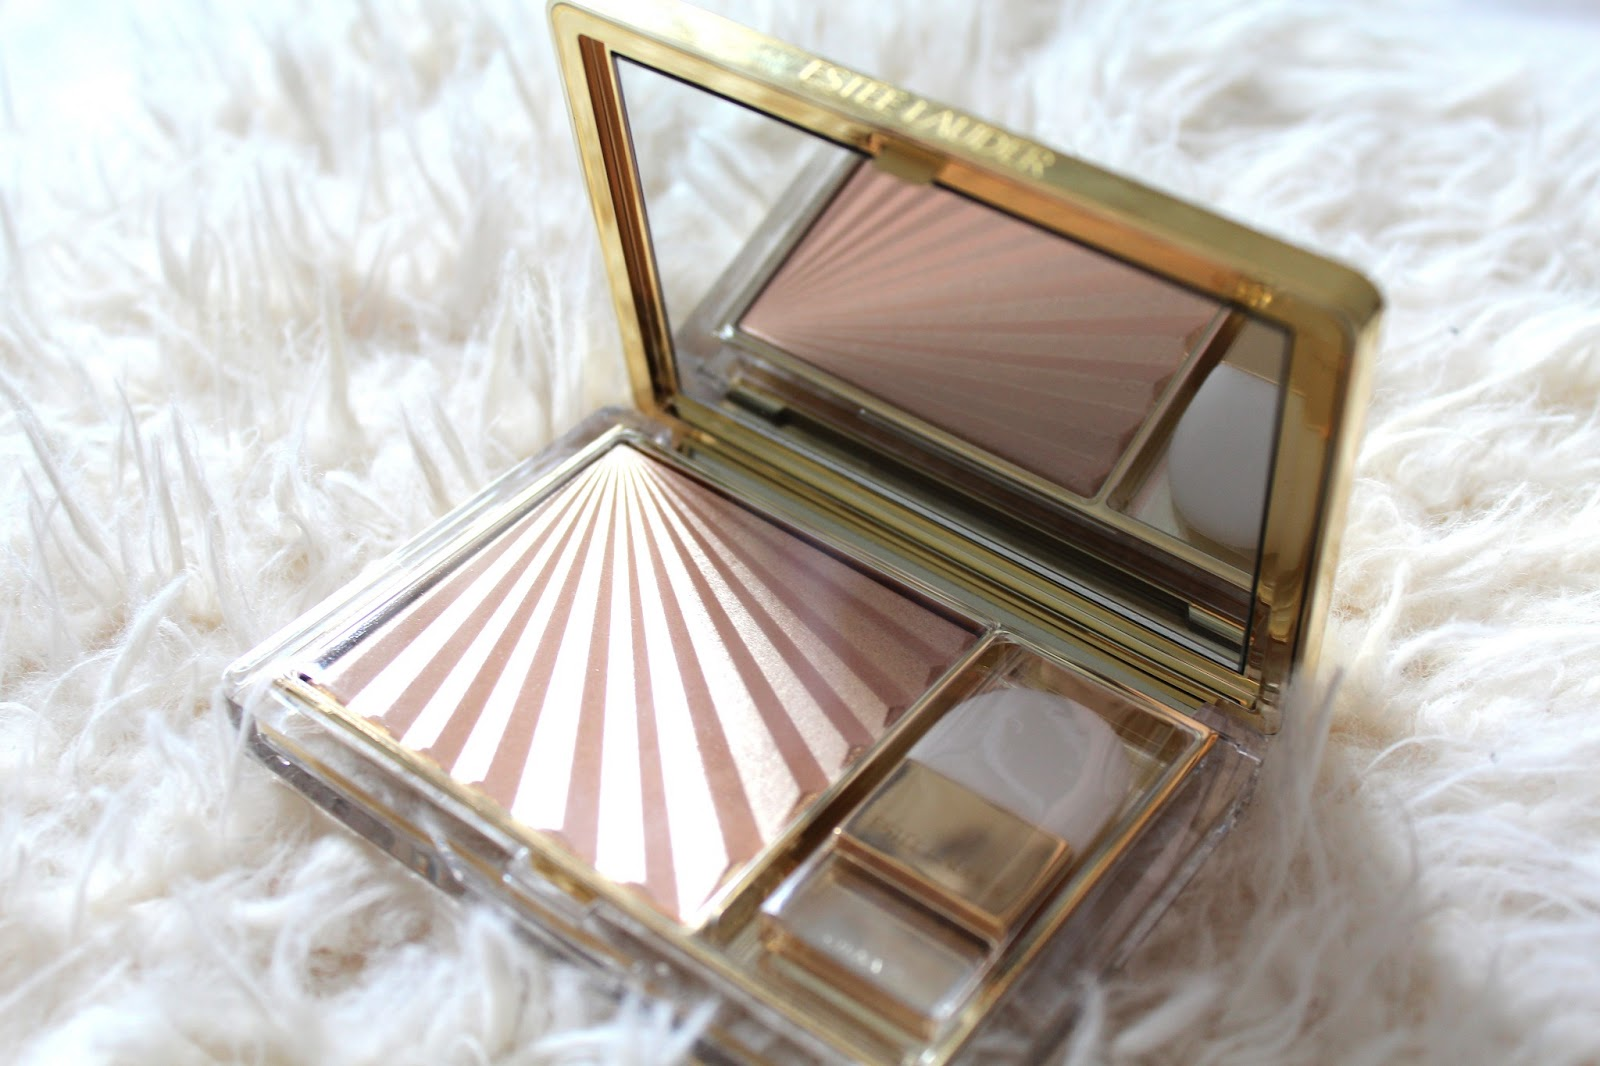 Estee Lauder Heatwave